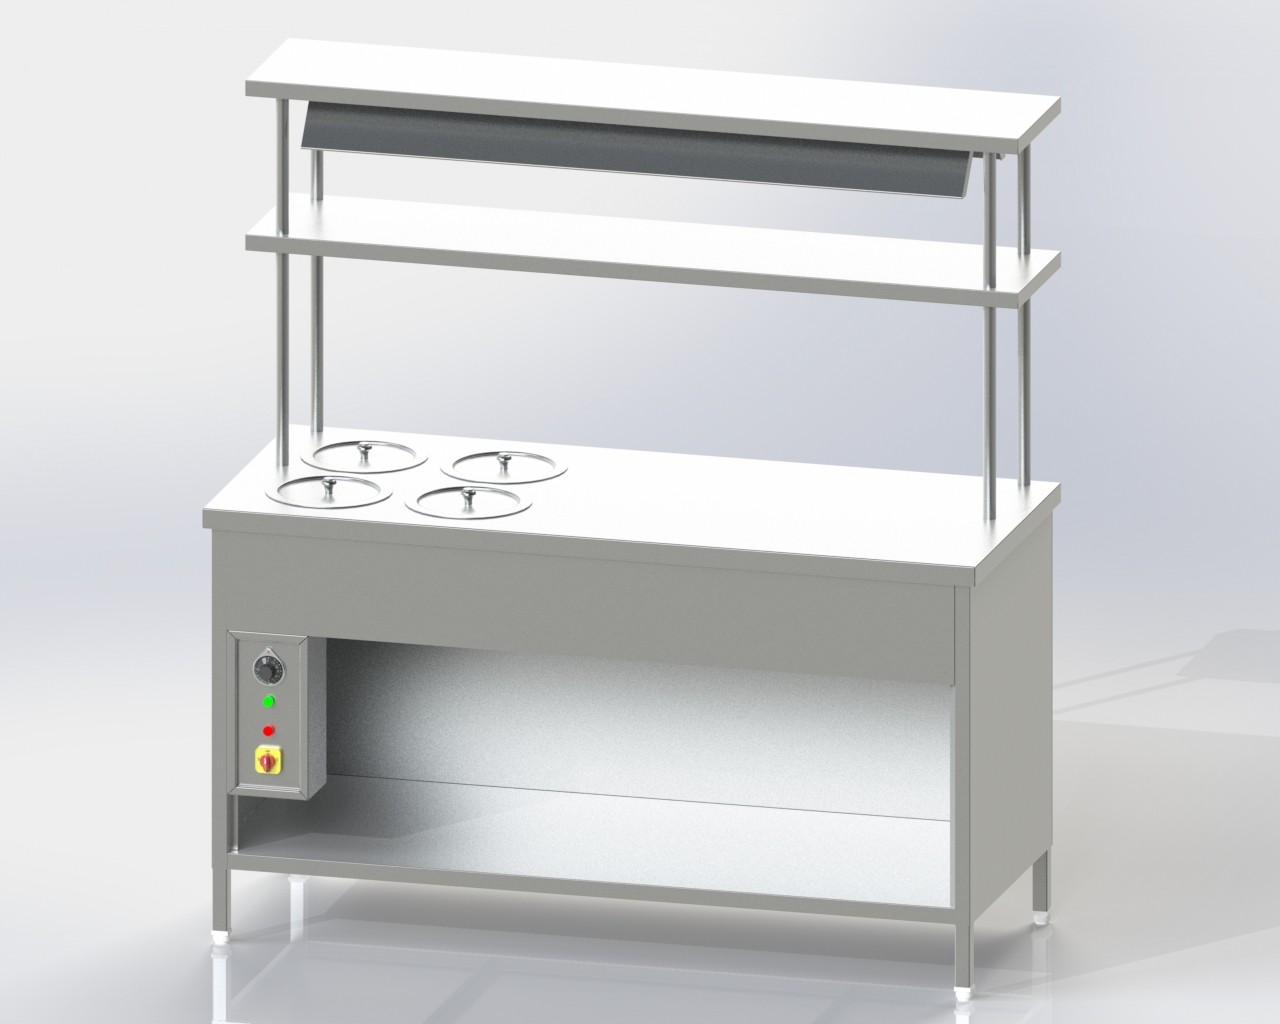 Pick up Counter 4 Round Vessel Bain Marie u-s and 2 o-s